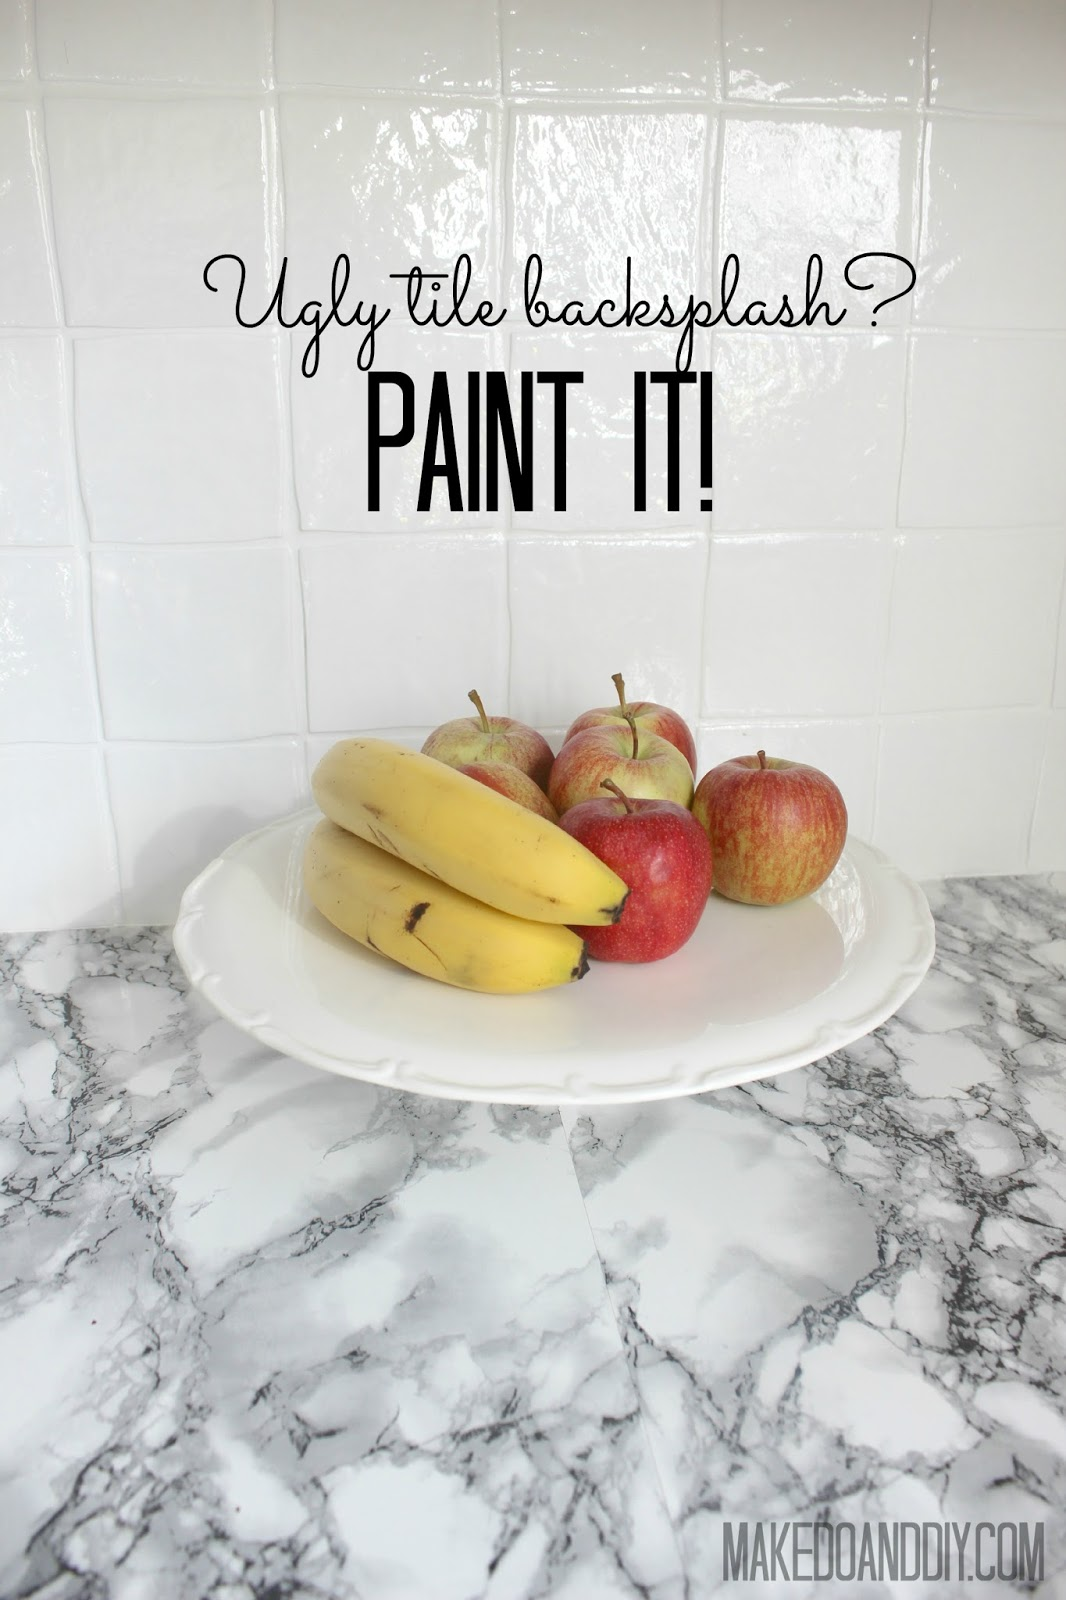 Painted Kitchen Tile Backsplash Cheap And Easy Update For Dated Tile Www Makedoanddiy